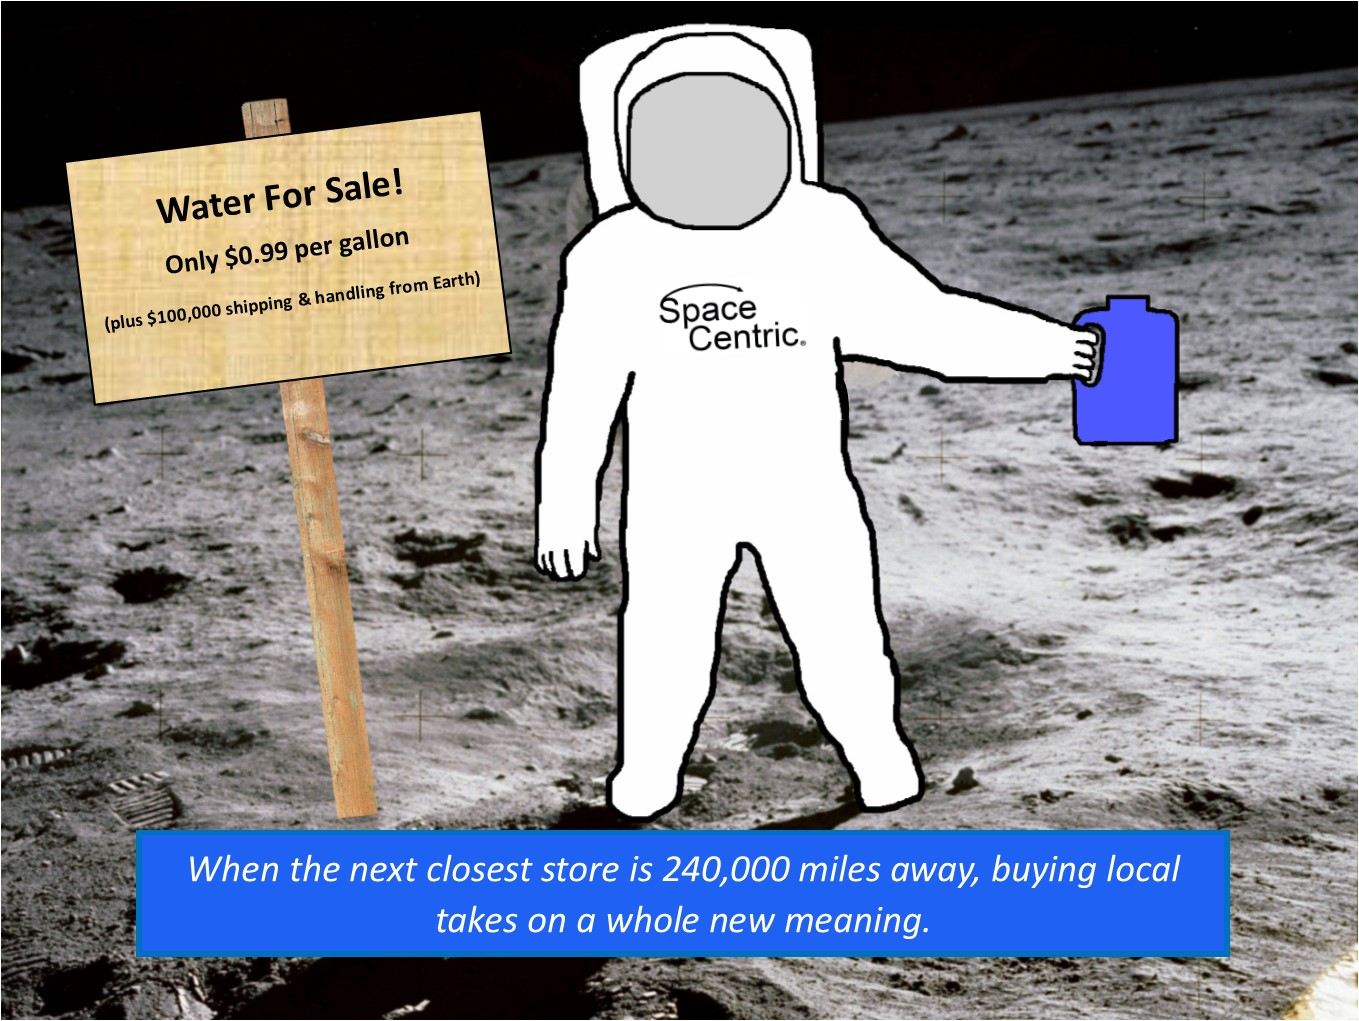 Lunar water for sale. Only $0.99 per gallon, plus $100,000 shipping and handling from Earth. When the next closest store is 240,000 miles away, buying local takes on a whole new meaning.